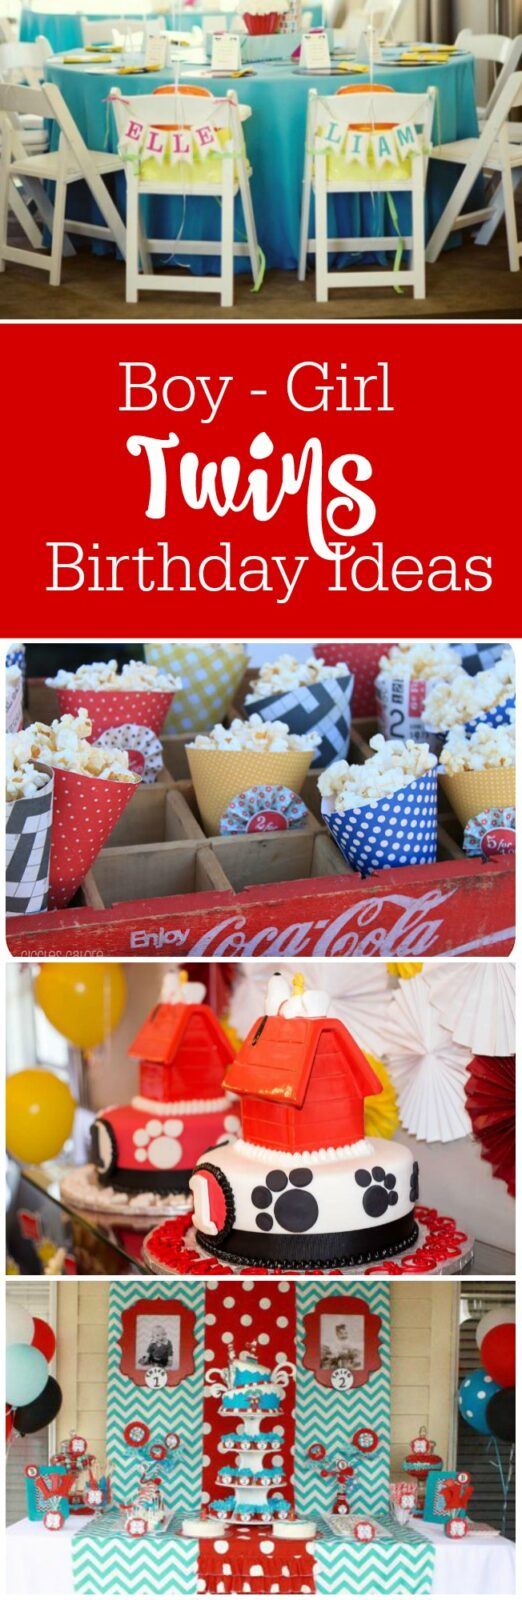 Boy Girl Twins Birthday Party Ideas By The Teacher